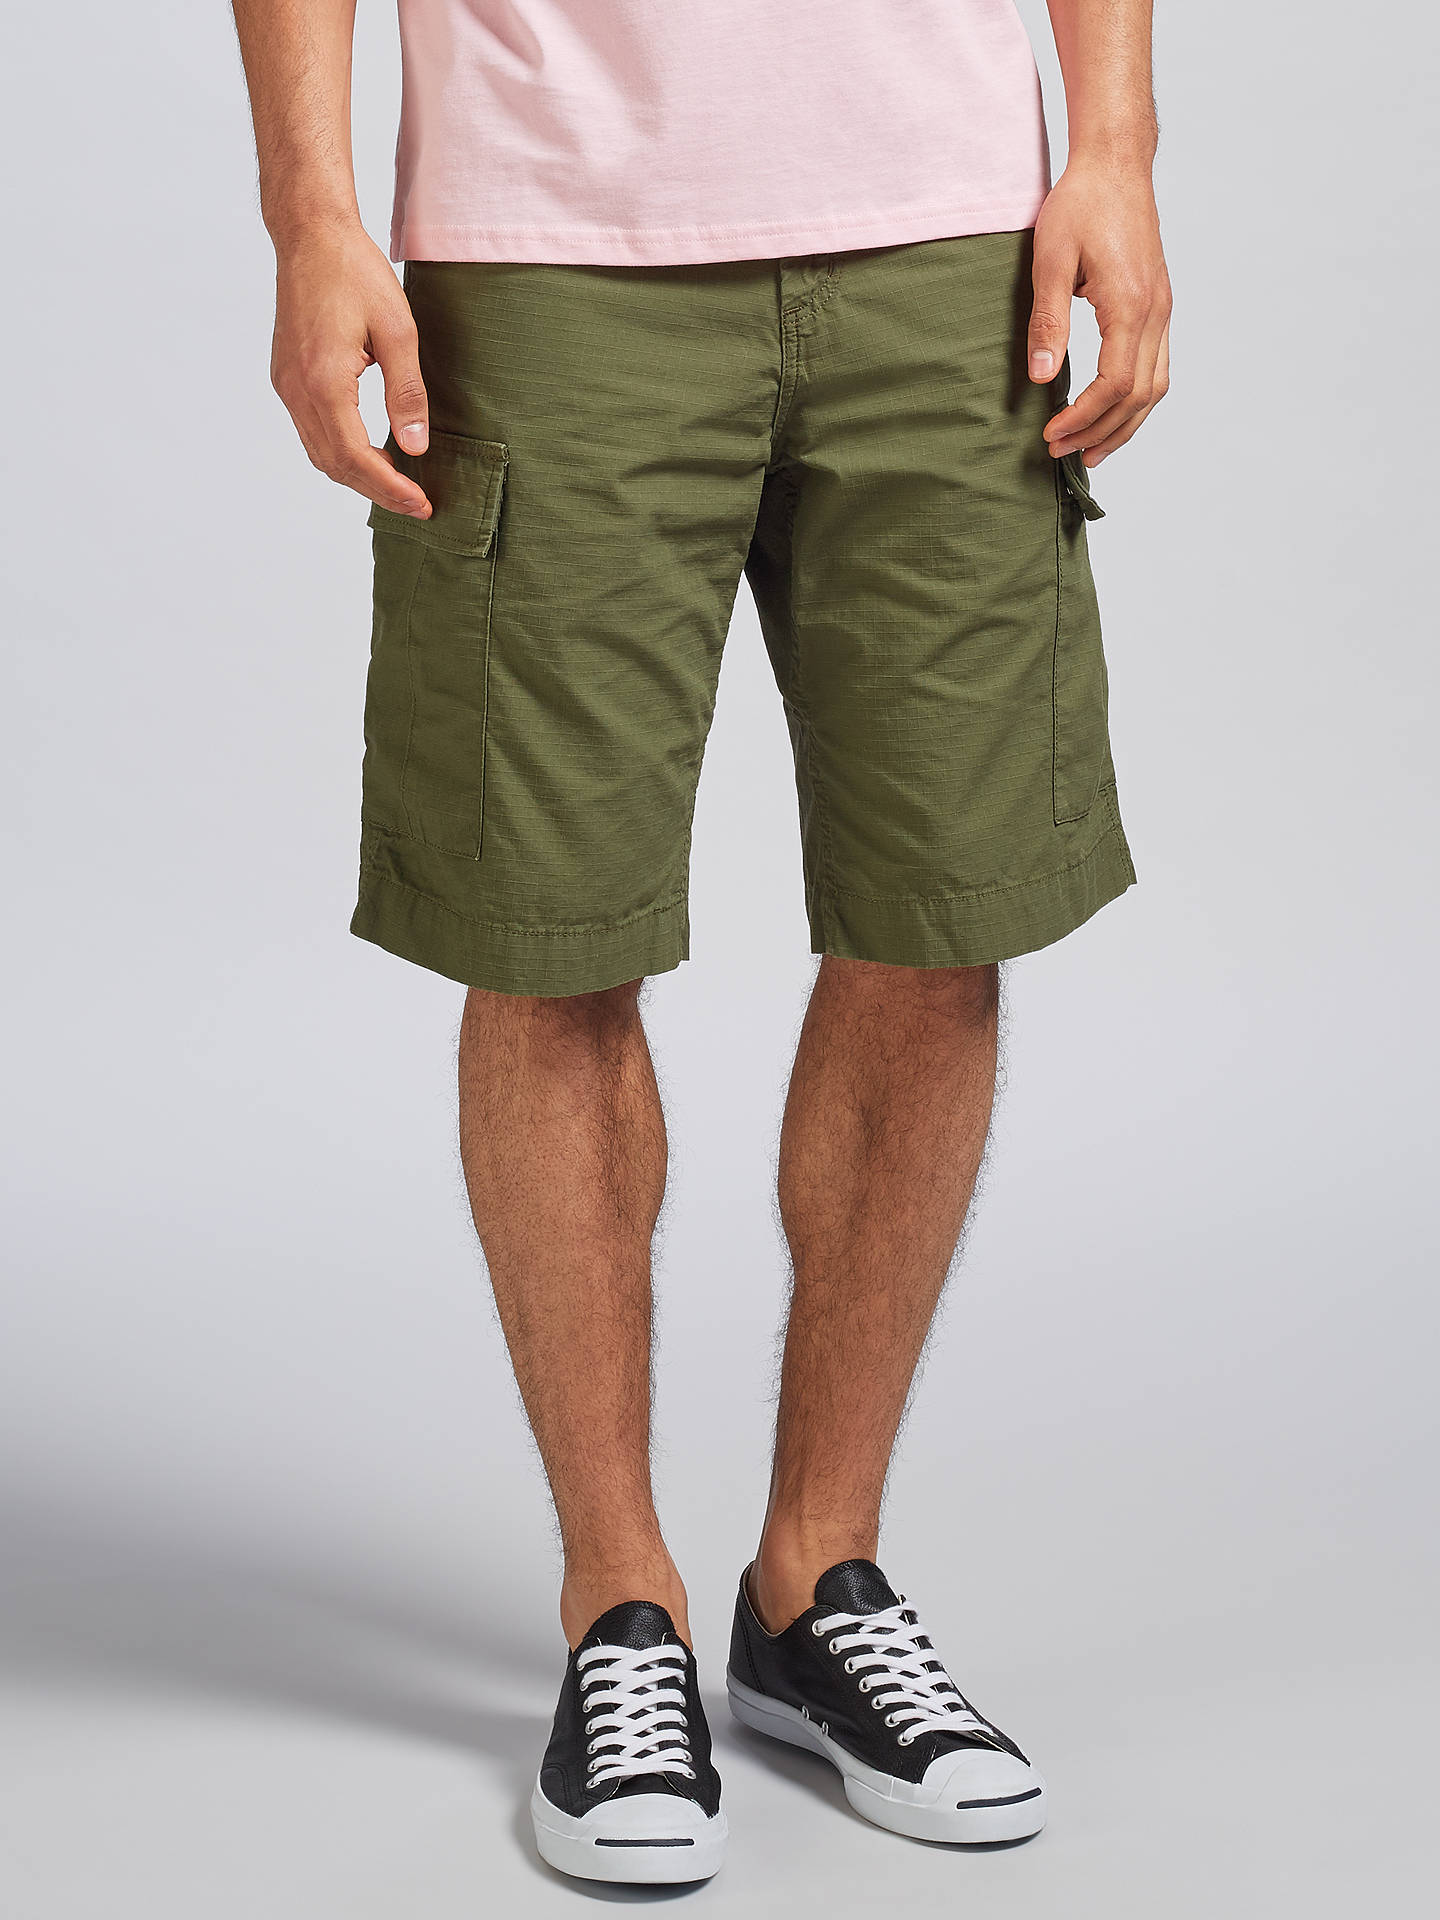 9473f3e885 Buy Carhartt WIP Regular Fit Cargo Shorts, Rover Green, 30R Online at  johnlewis.